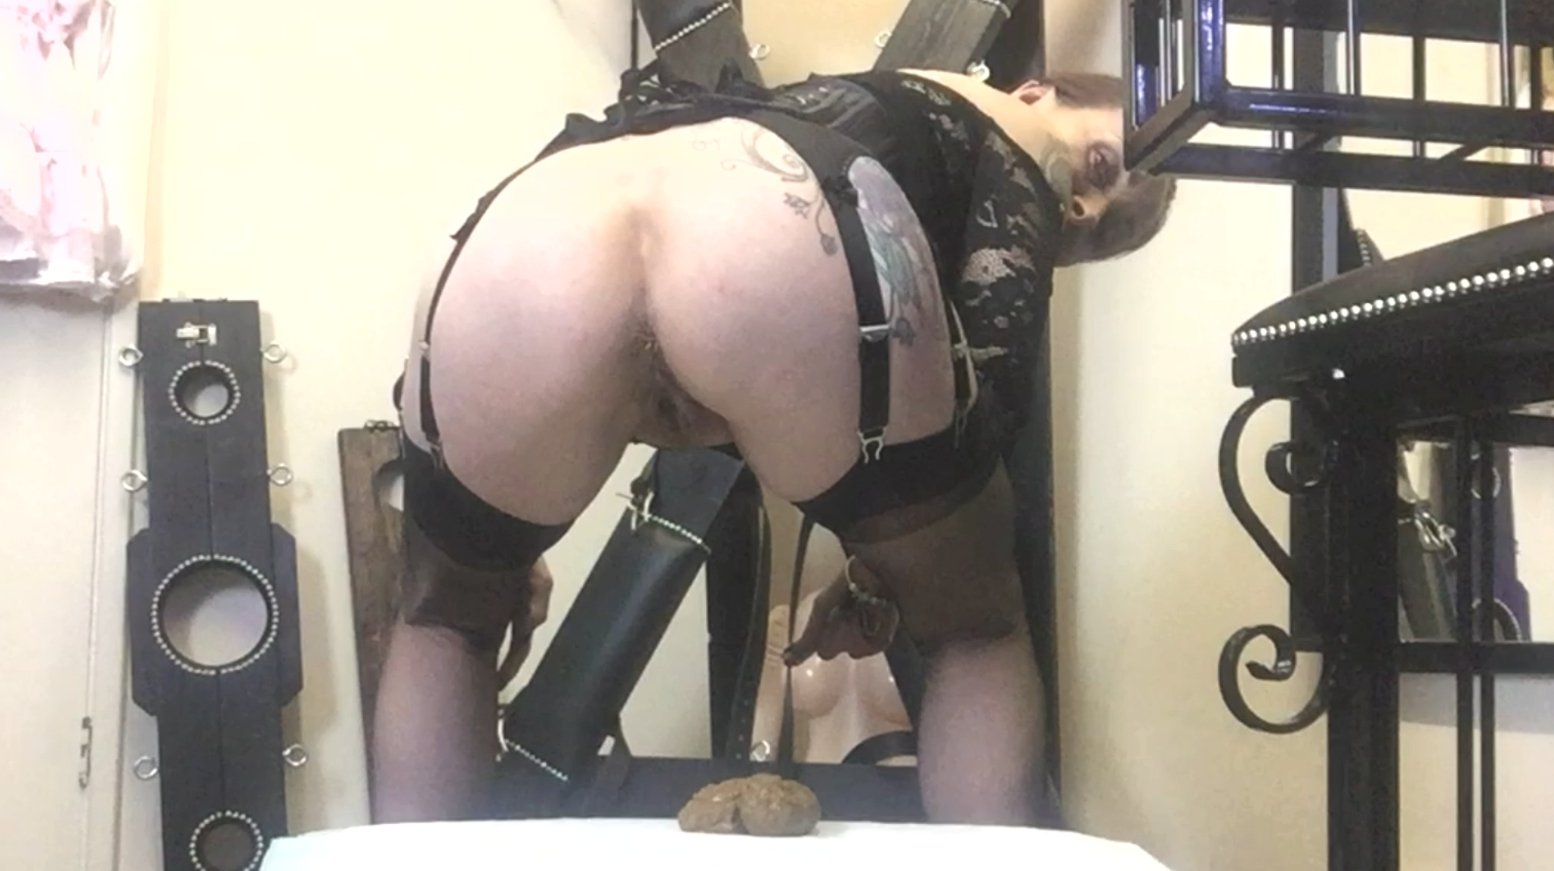 Emptying My Glorious Bottom (28.02.2021) 6.99$ (Premium Request) via Mistress Julia Taylor